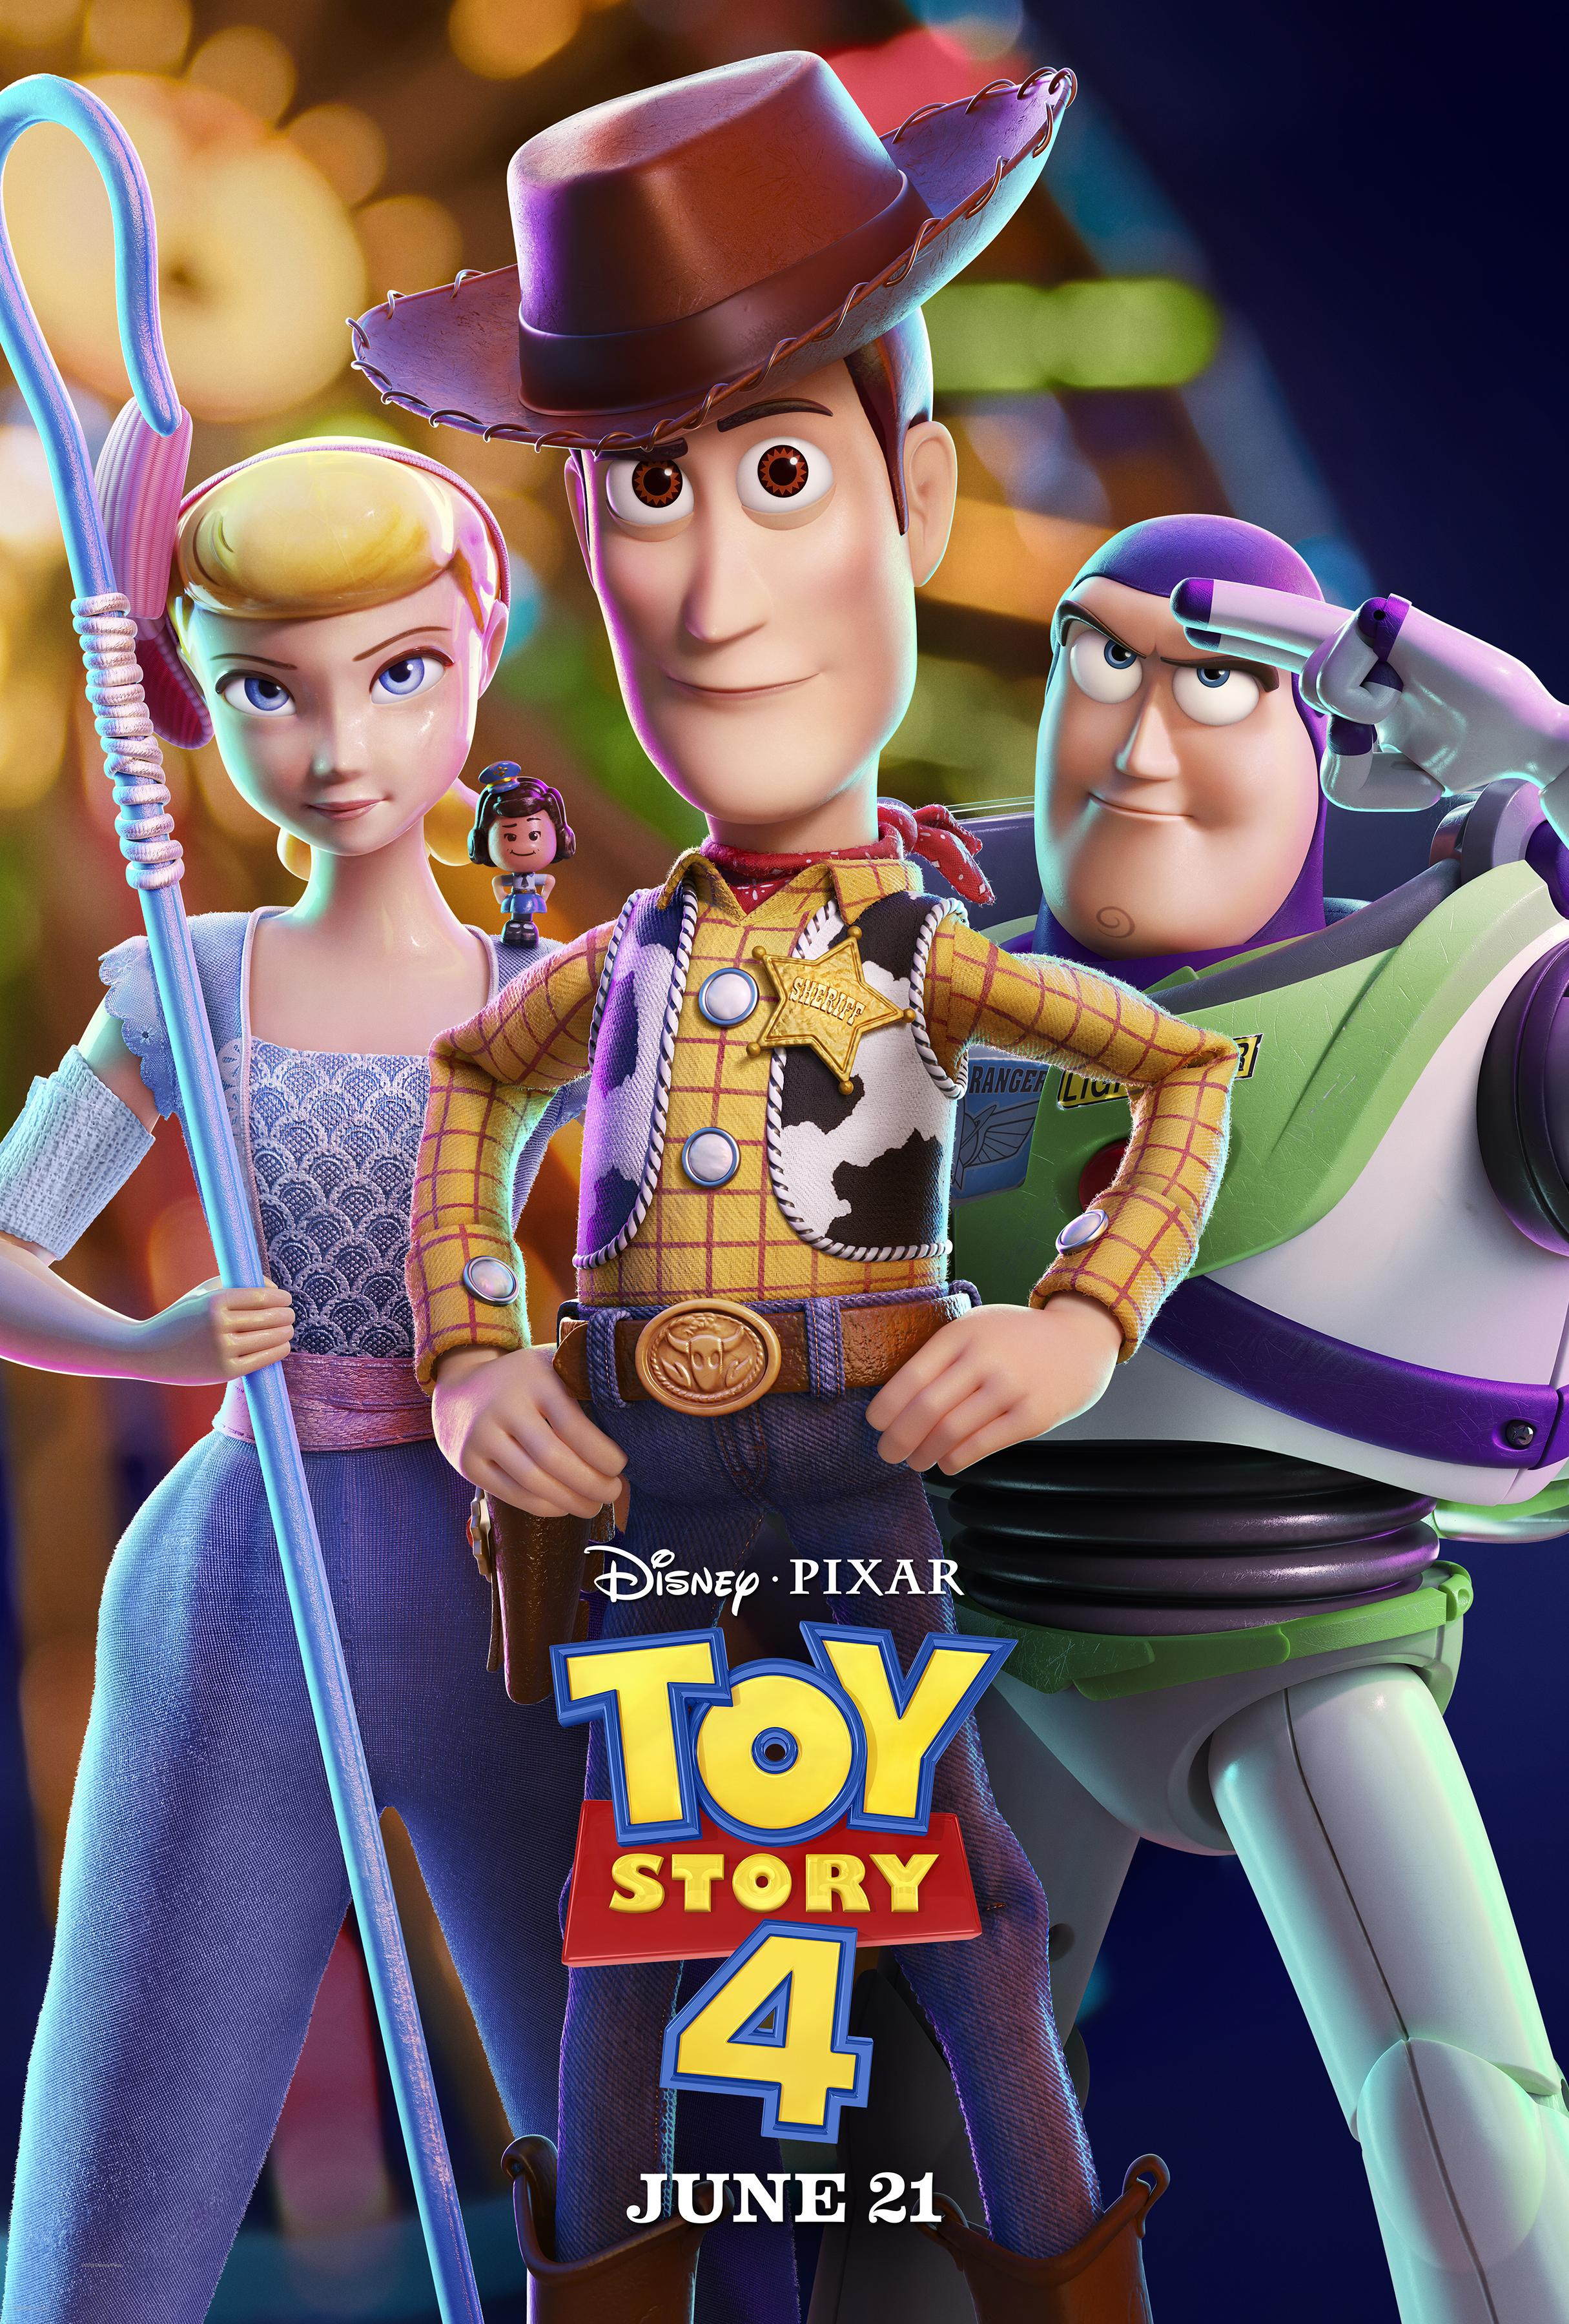 New Toy Story 4 Preview and Final Poster Released! - AllEars.Net